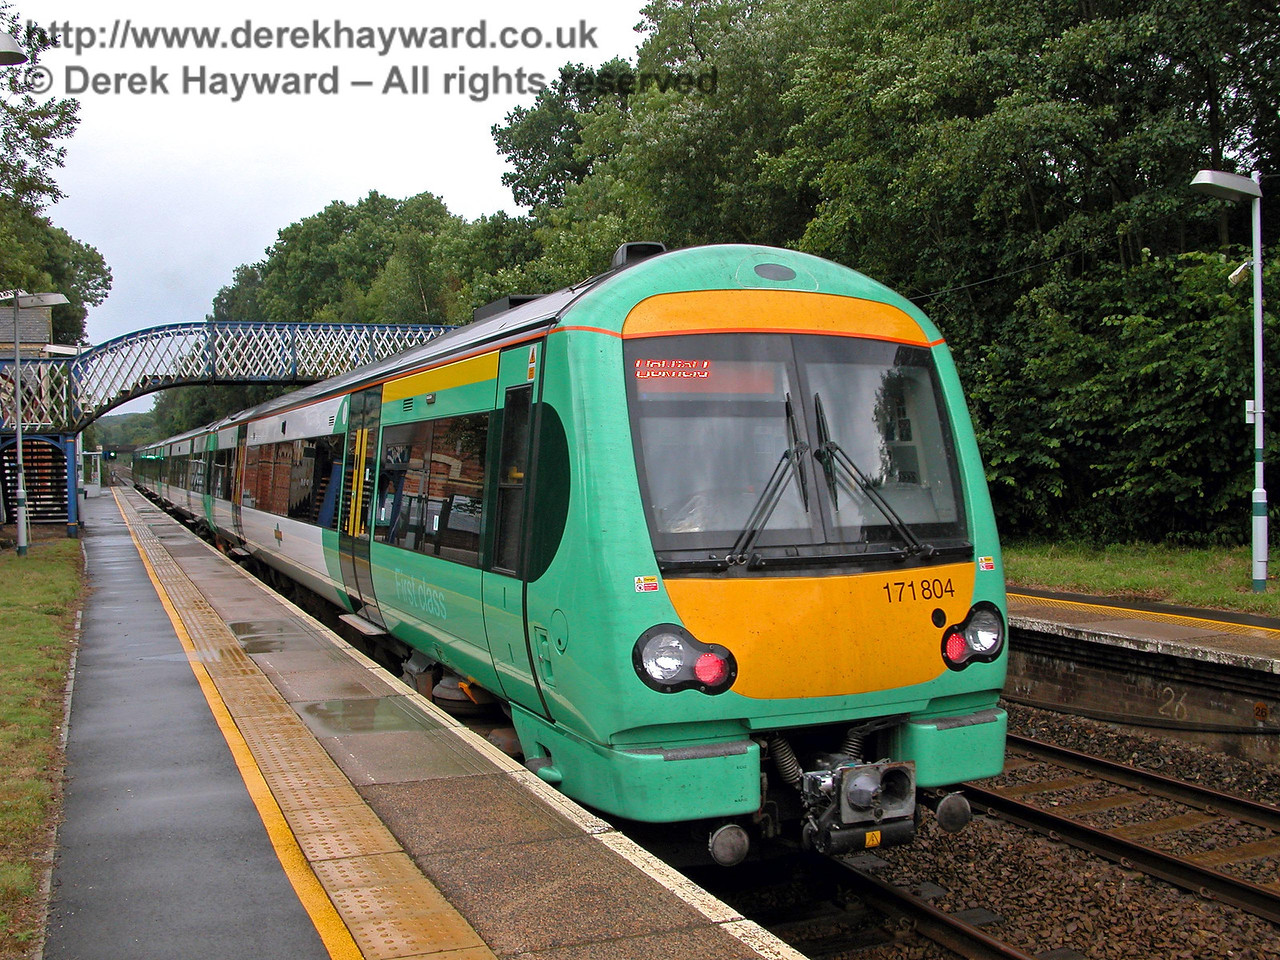 By 2005 the Thumpers had given way to the modern Class 171 units, and through trains to London were restored in a new timetable. Unit 171804 waits to depart on a southbound journey to Uckfield. 14.08.2005